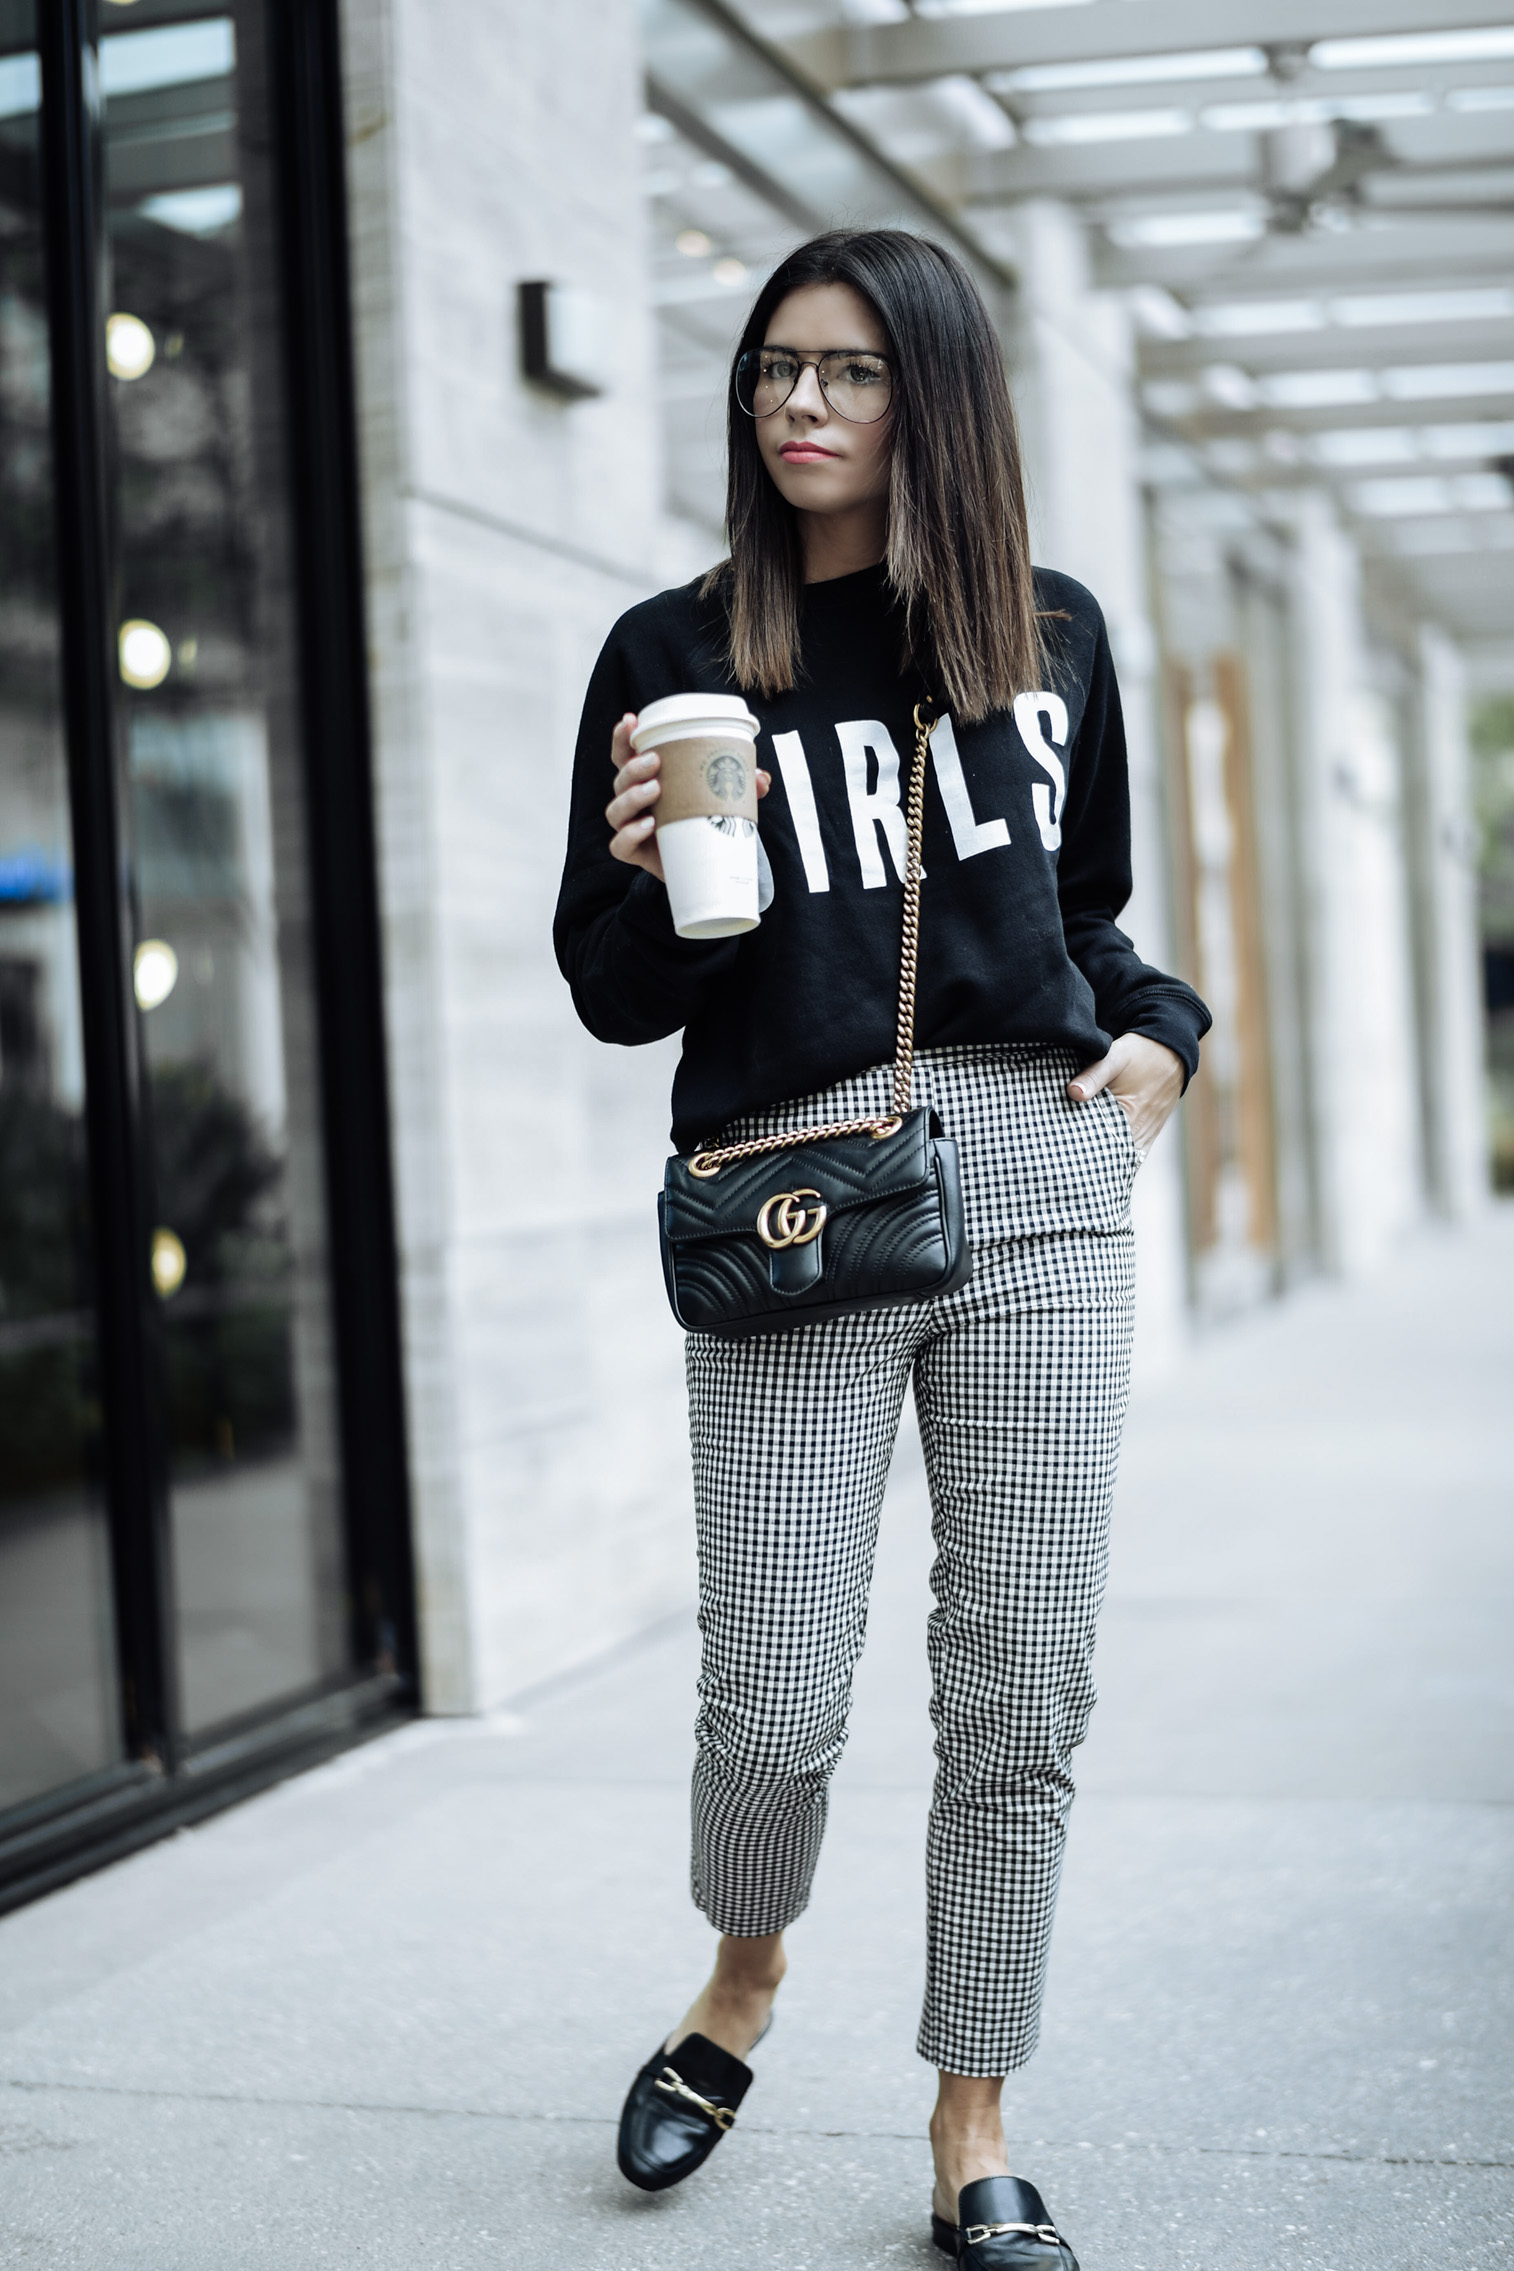 3 check print pieces for under $100 |Gingham print pants | Brunette the Label sweatshirt | Mules |Tiffany Jais fashion and lifestyle blogger of Flaunt and Center | Houston fashion blogger | Streetstyle blog | Personal style online #falloutfits #ginghamoutfits #graphicsweatshirt